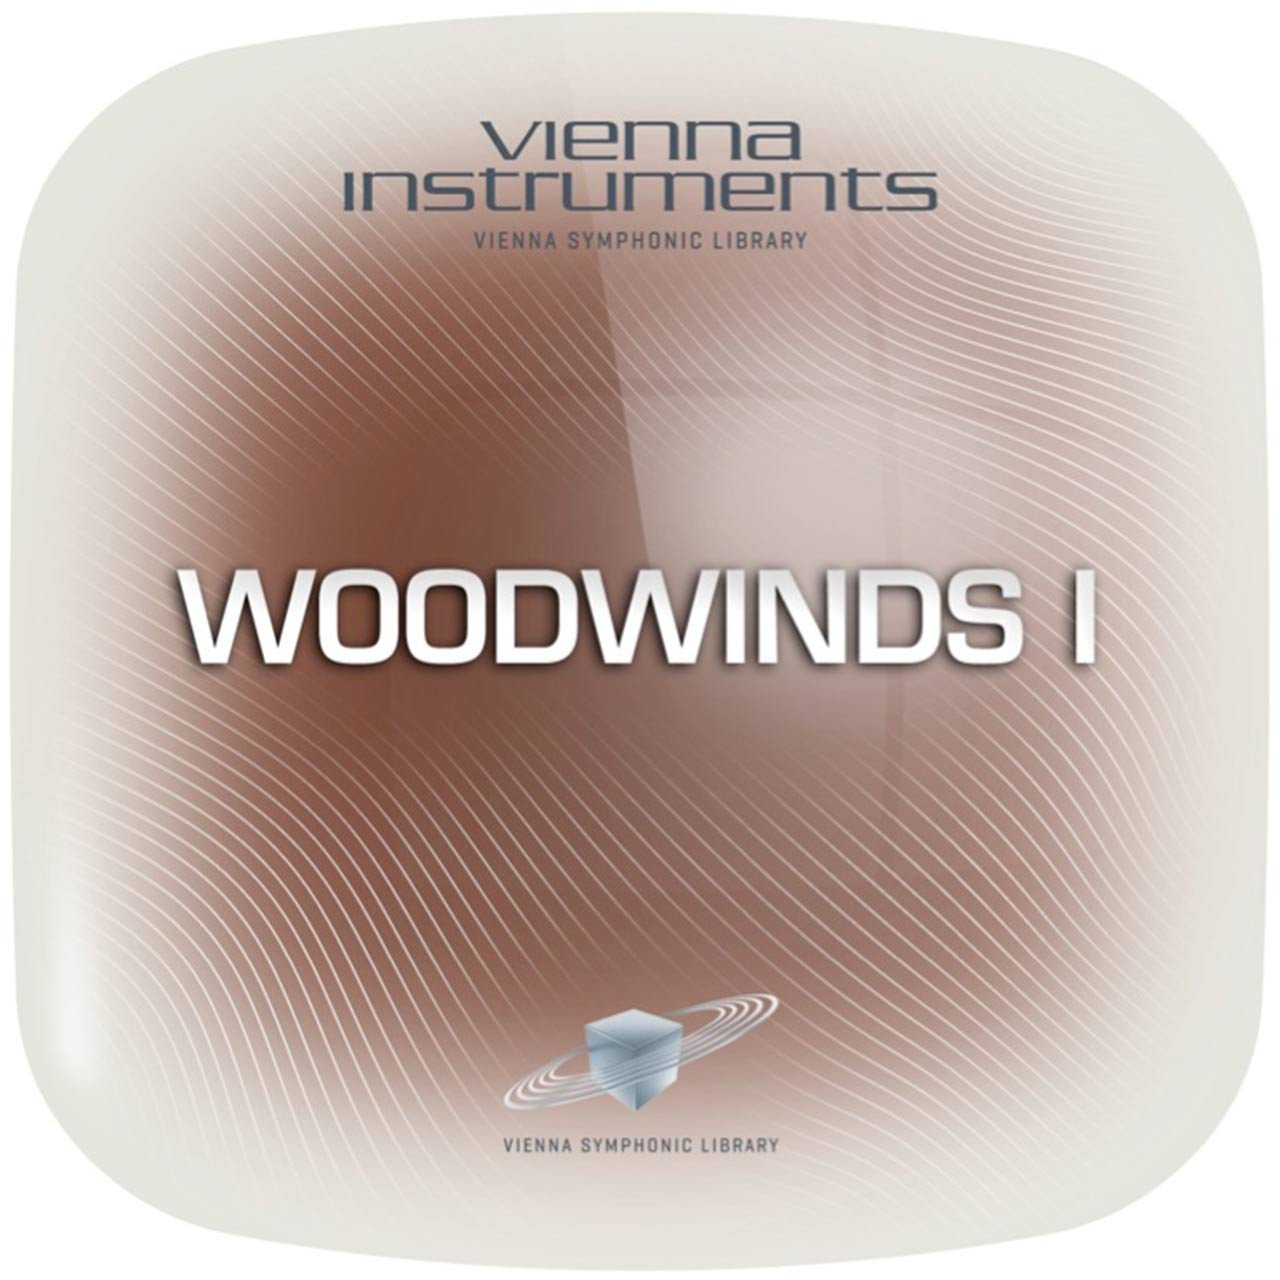 Software Instruments - Vienna Symphonic Library VSL - WOODWINDS I